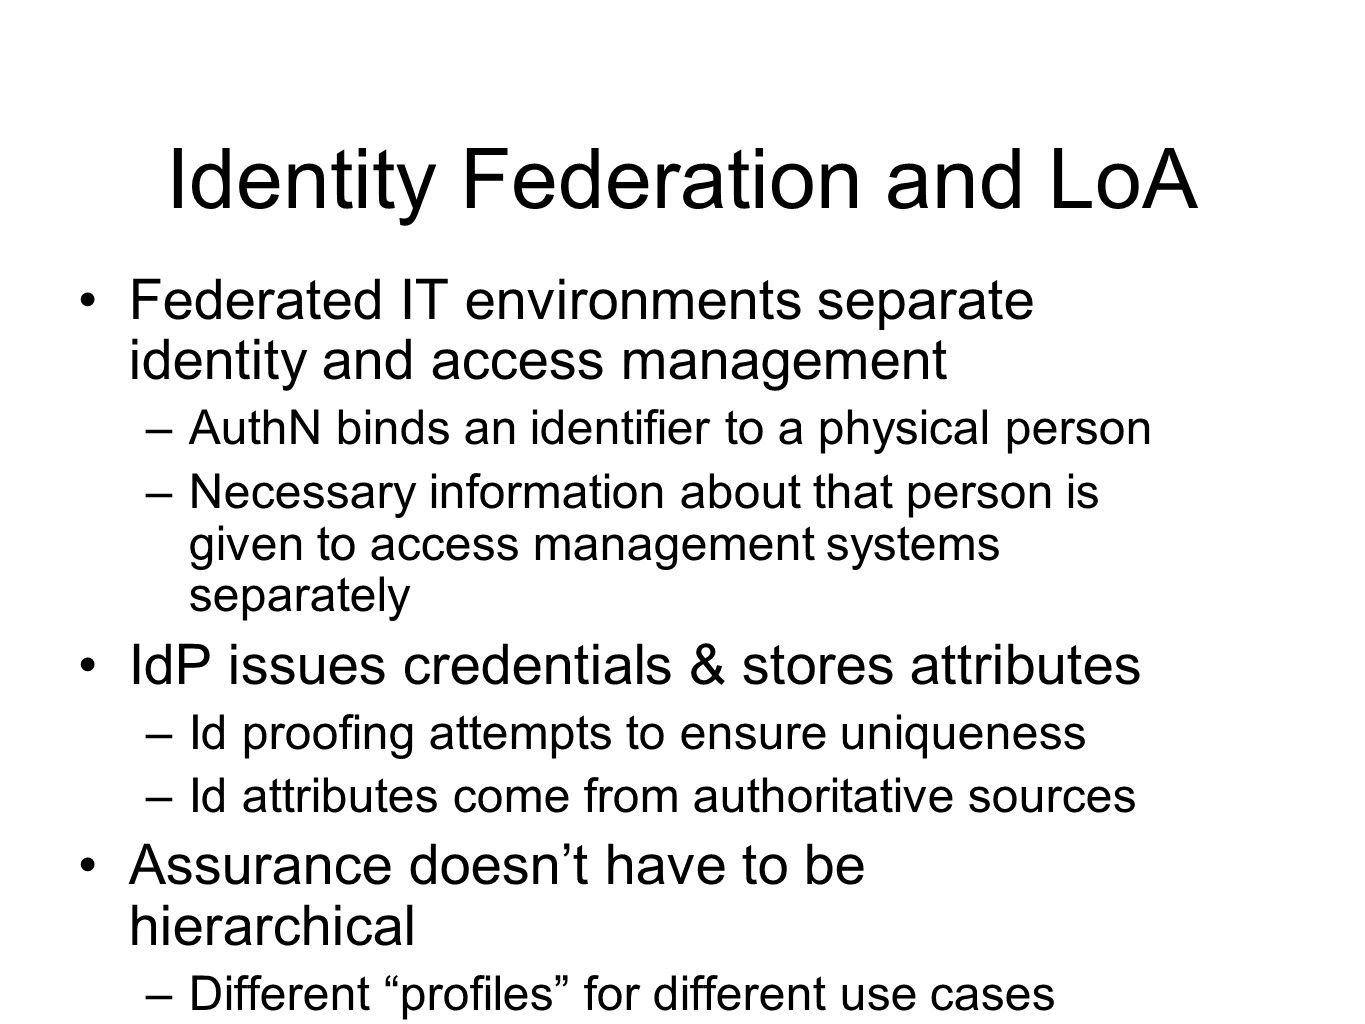 Identity Federation and LoA Federated IT environments separate identity and access management –AuthN binds an identifier to a physical person –Necessary information about that person is given to access management systems separately IdP issues credentials & stores attributes –Id proofing attempts to ensure uniqueness –Id attributes come from authoritative sources Assurance doesn't have to be hierarchical –Different profiles for different use cases